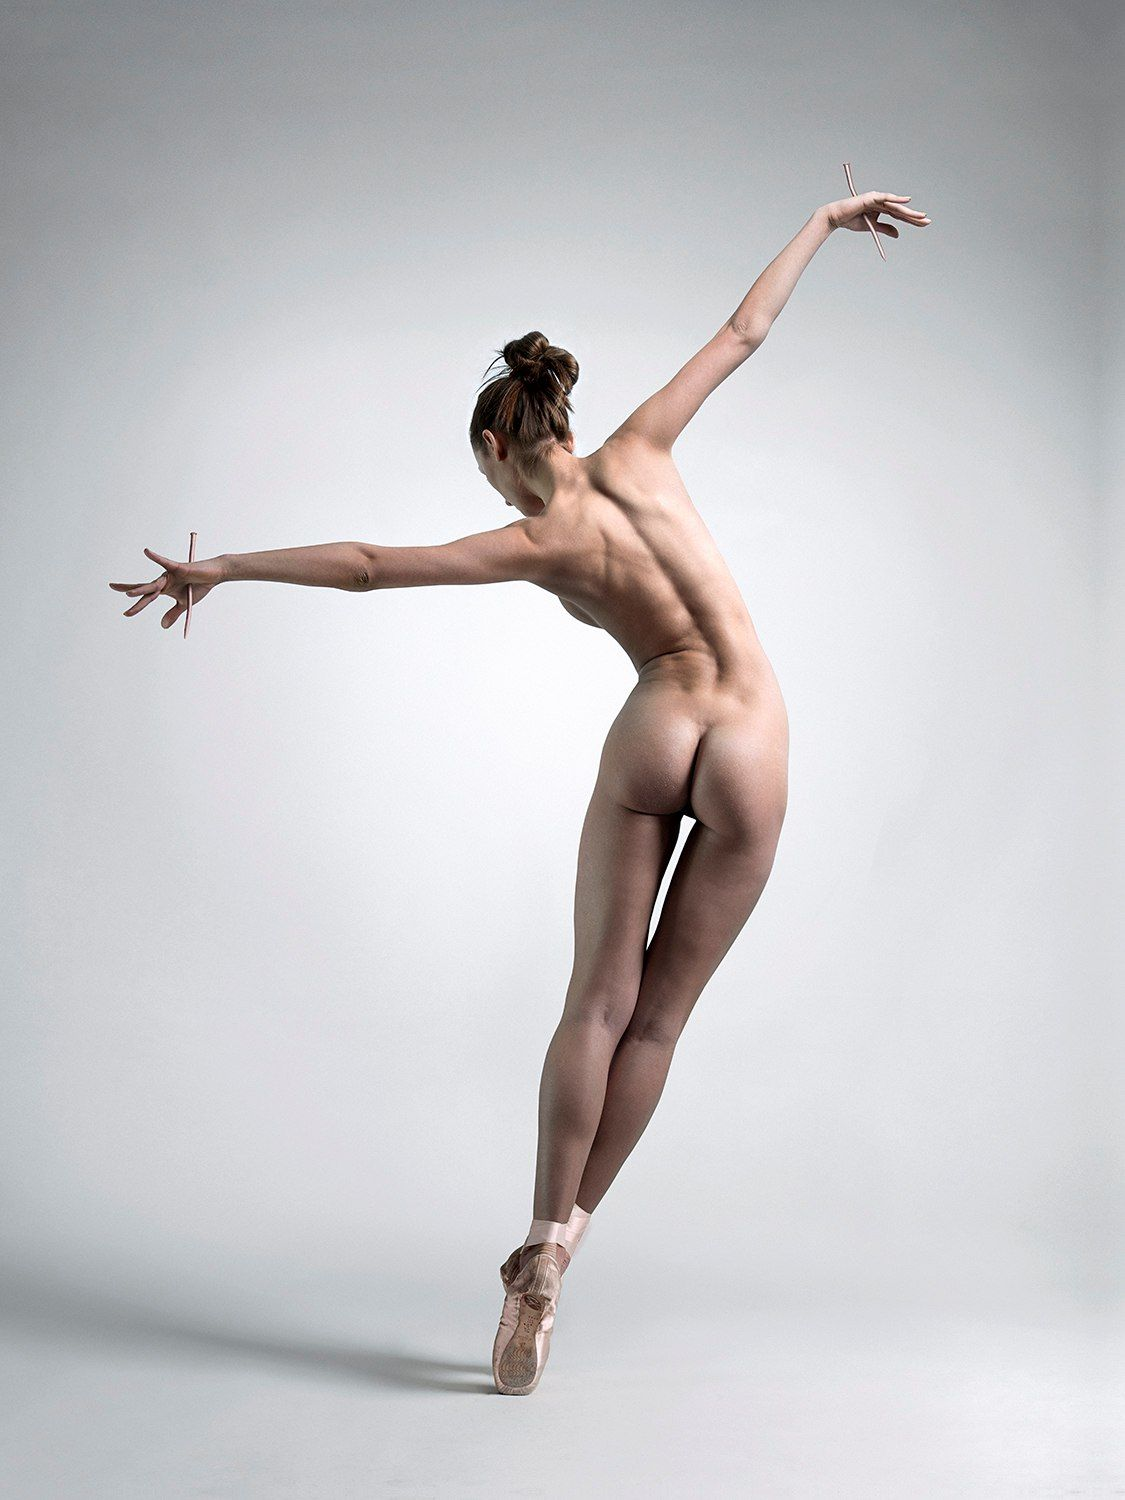 Nude Figure Reference Pose This Photo Isnt Explicit, So -9888